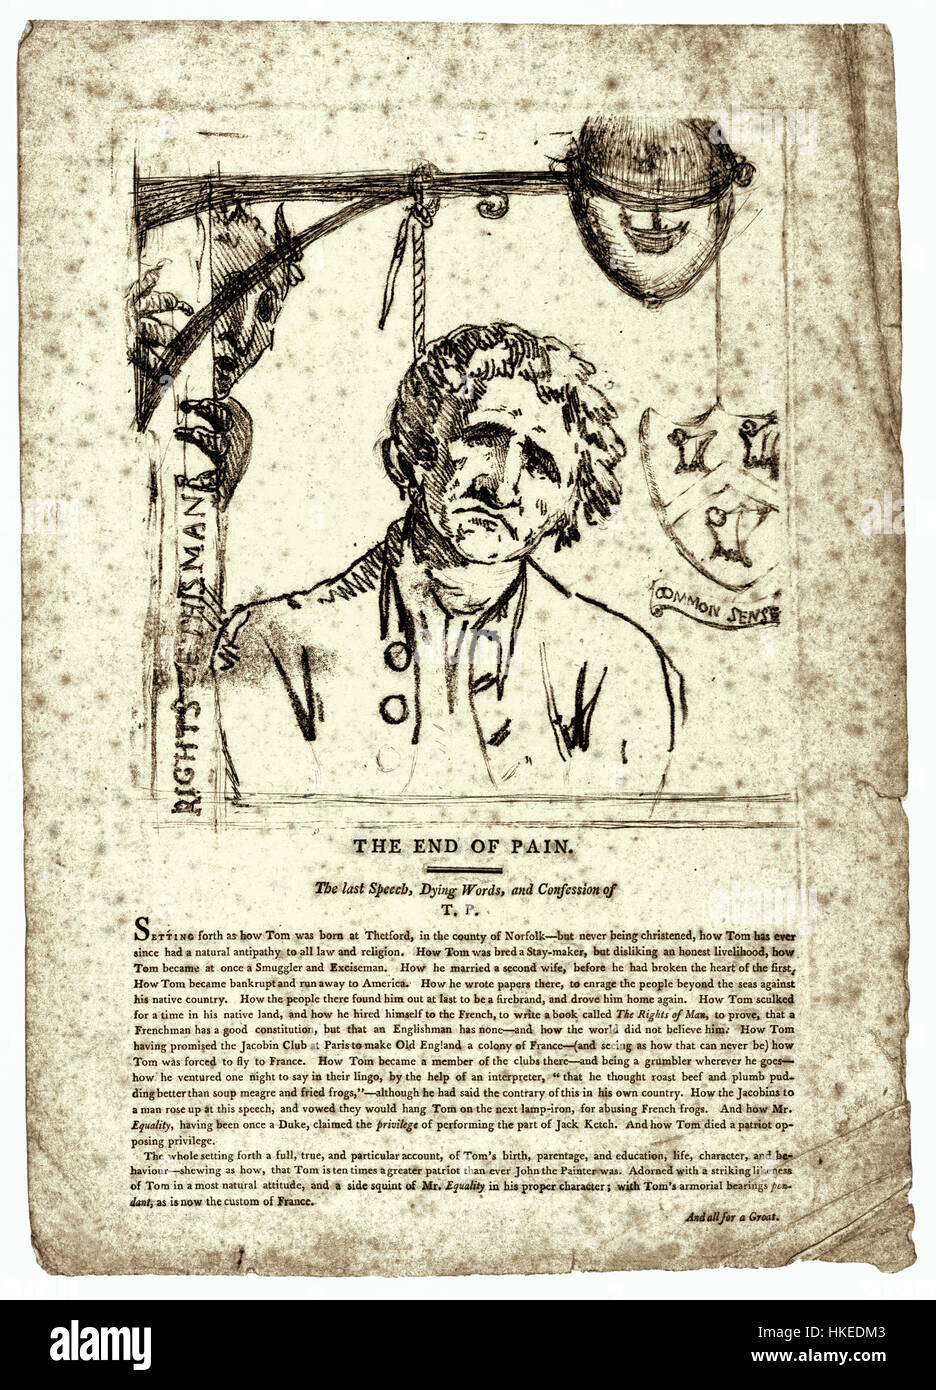 'The End of Pain' satirical print showing Thomas Paine (1736-1809)  English-American political writer, revolutionary and one of the founding  fathers of the ...